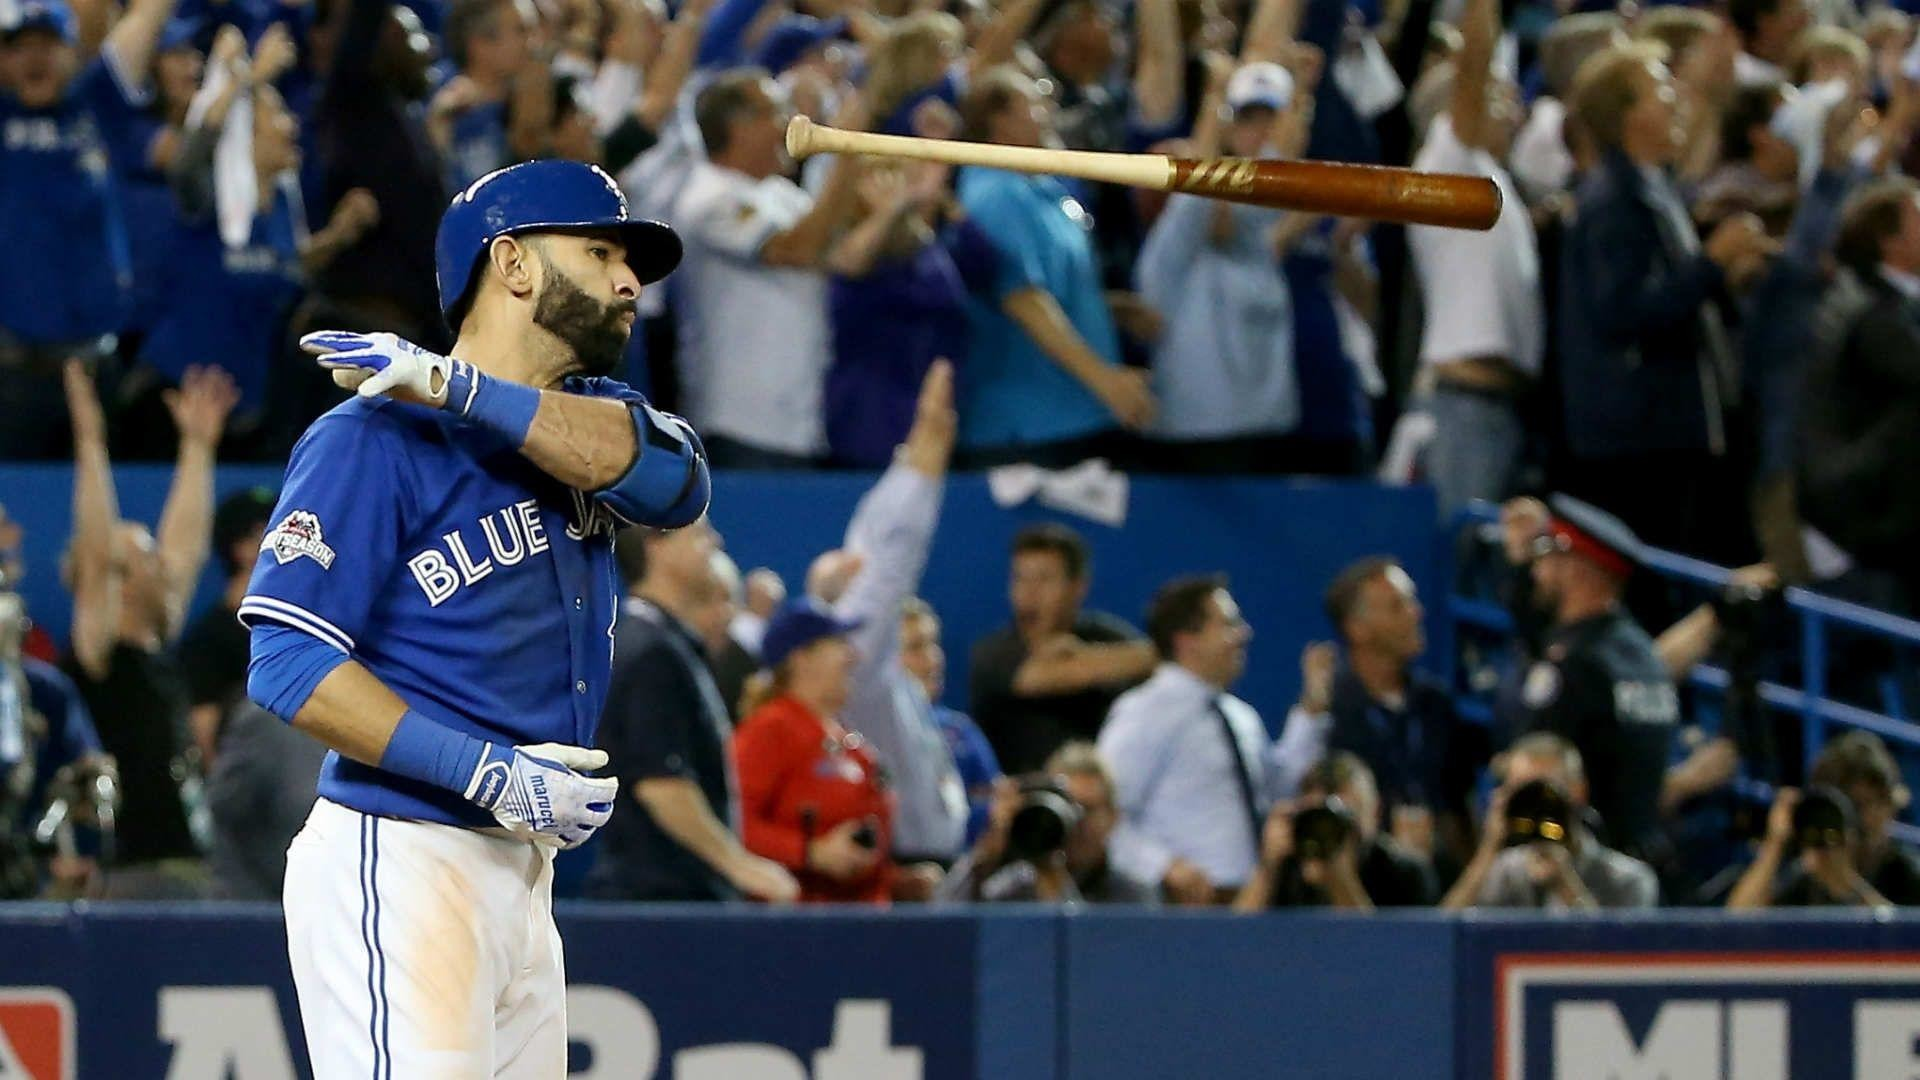 1920x1080 Jose Bautista 2016 Wallpapers - Wallpaper Cave